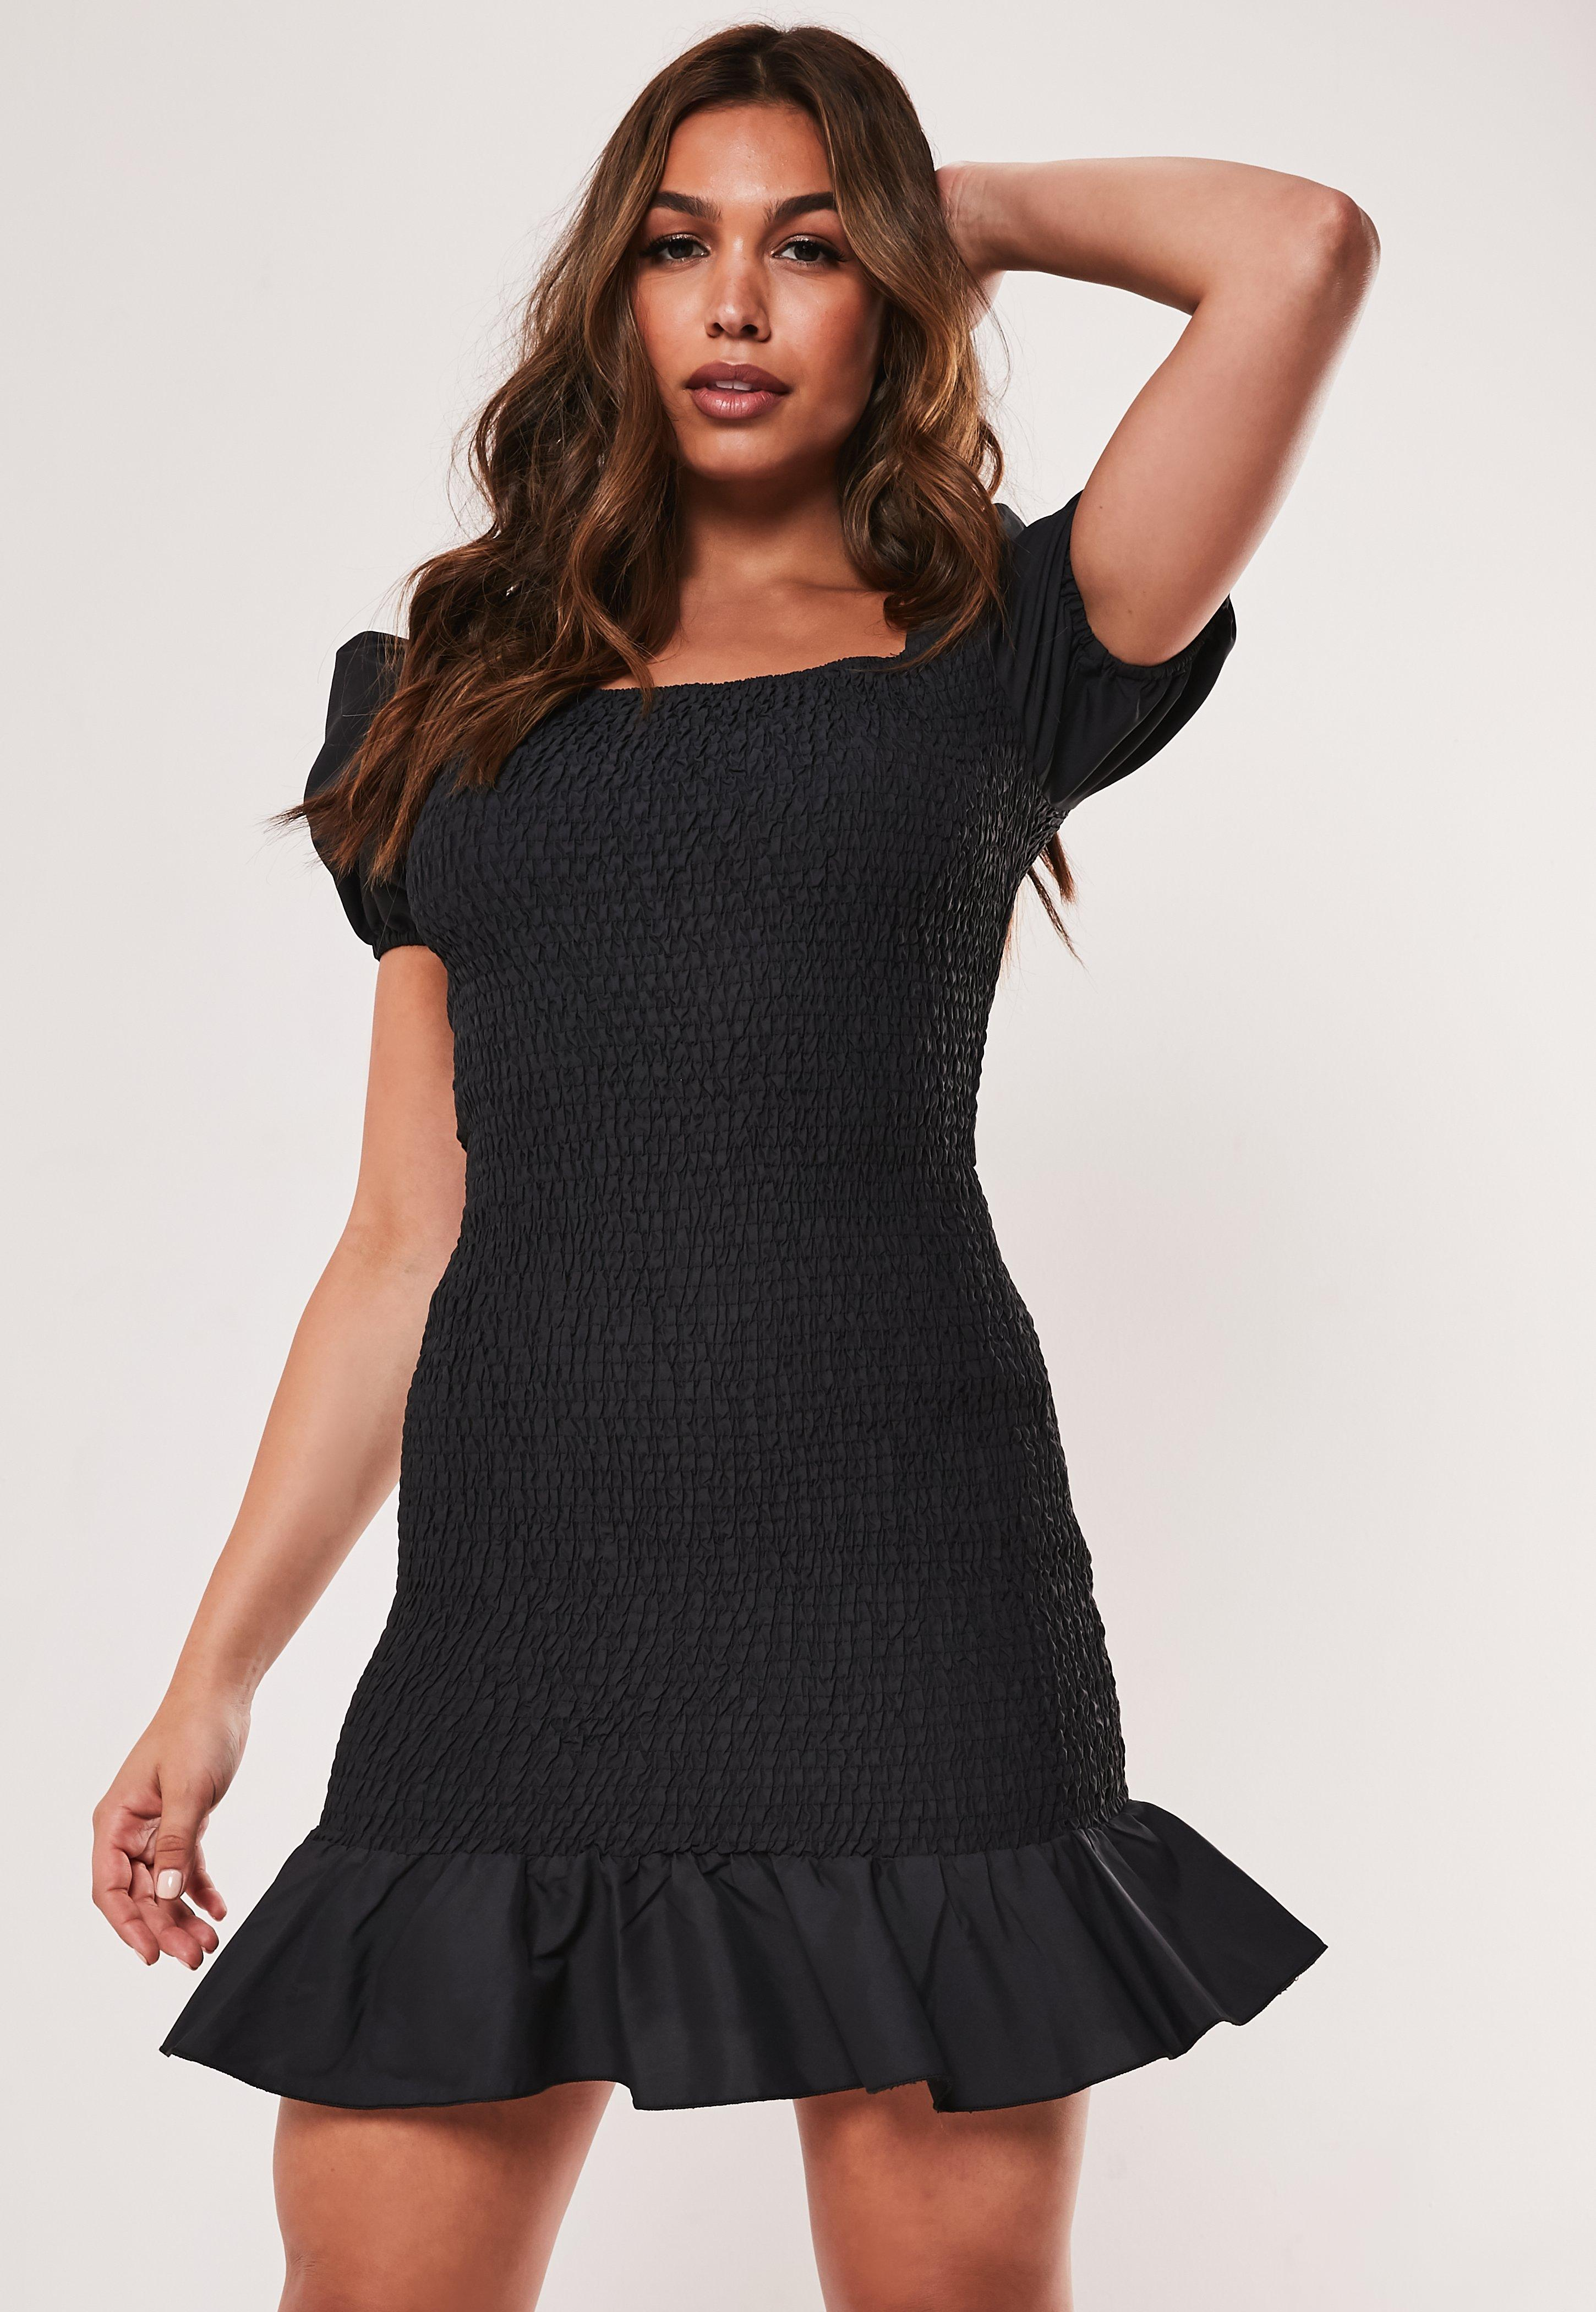 75ec92ccc0 Sale - Cheap Clothes for Women Online - Missguided Australia